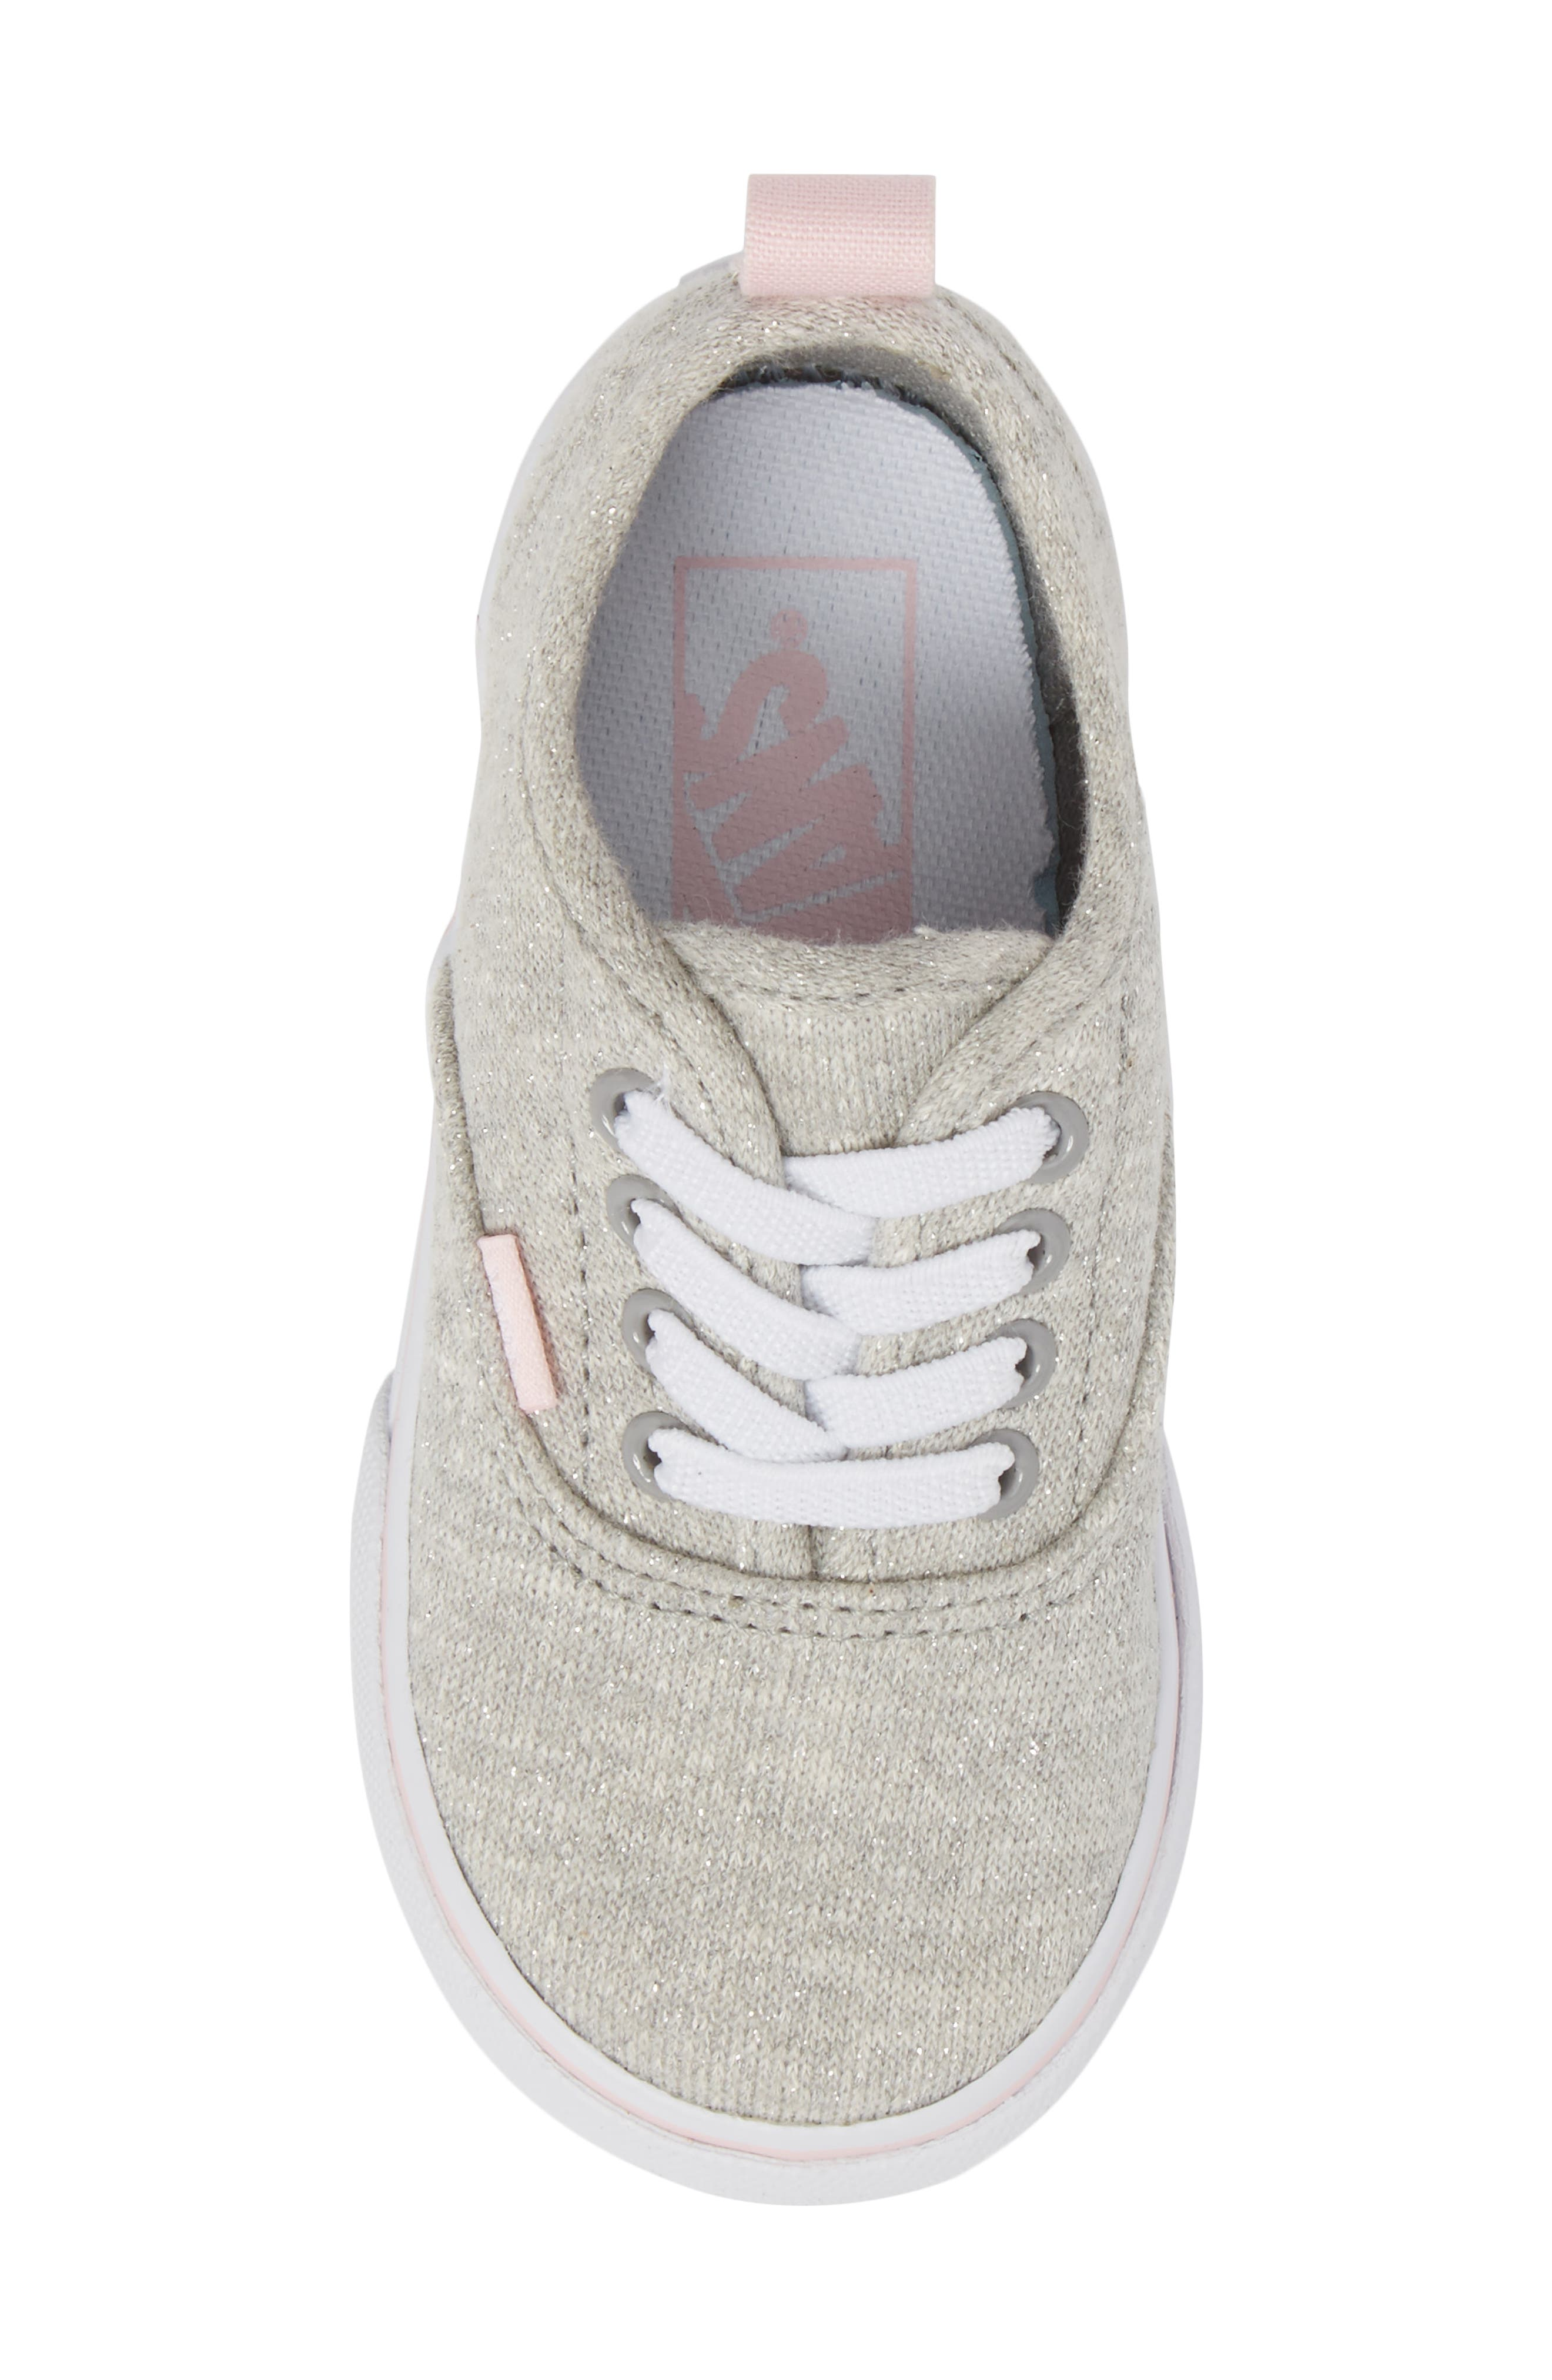 Authentic Glitter Sneaker,                             Alternate thumbnail 5, color,                             Gray/ Pink Shimmer Jersey